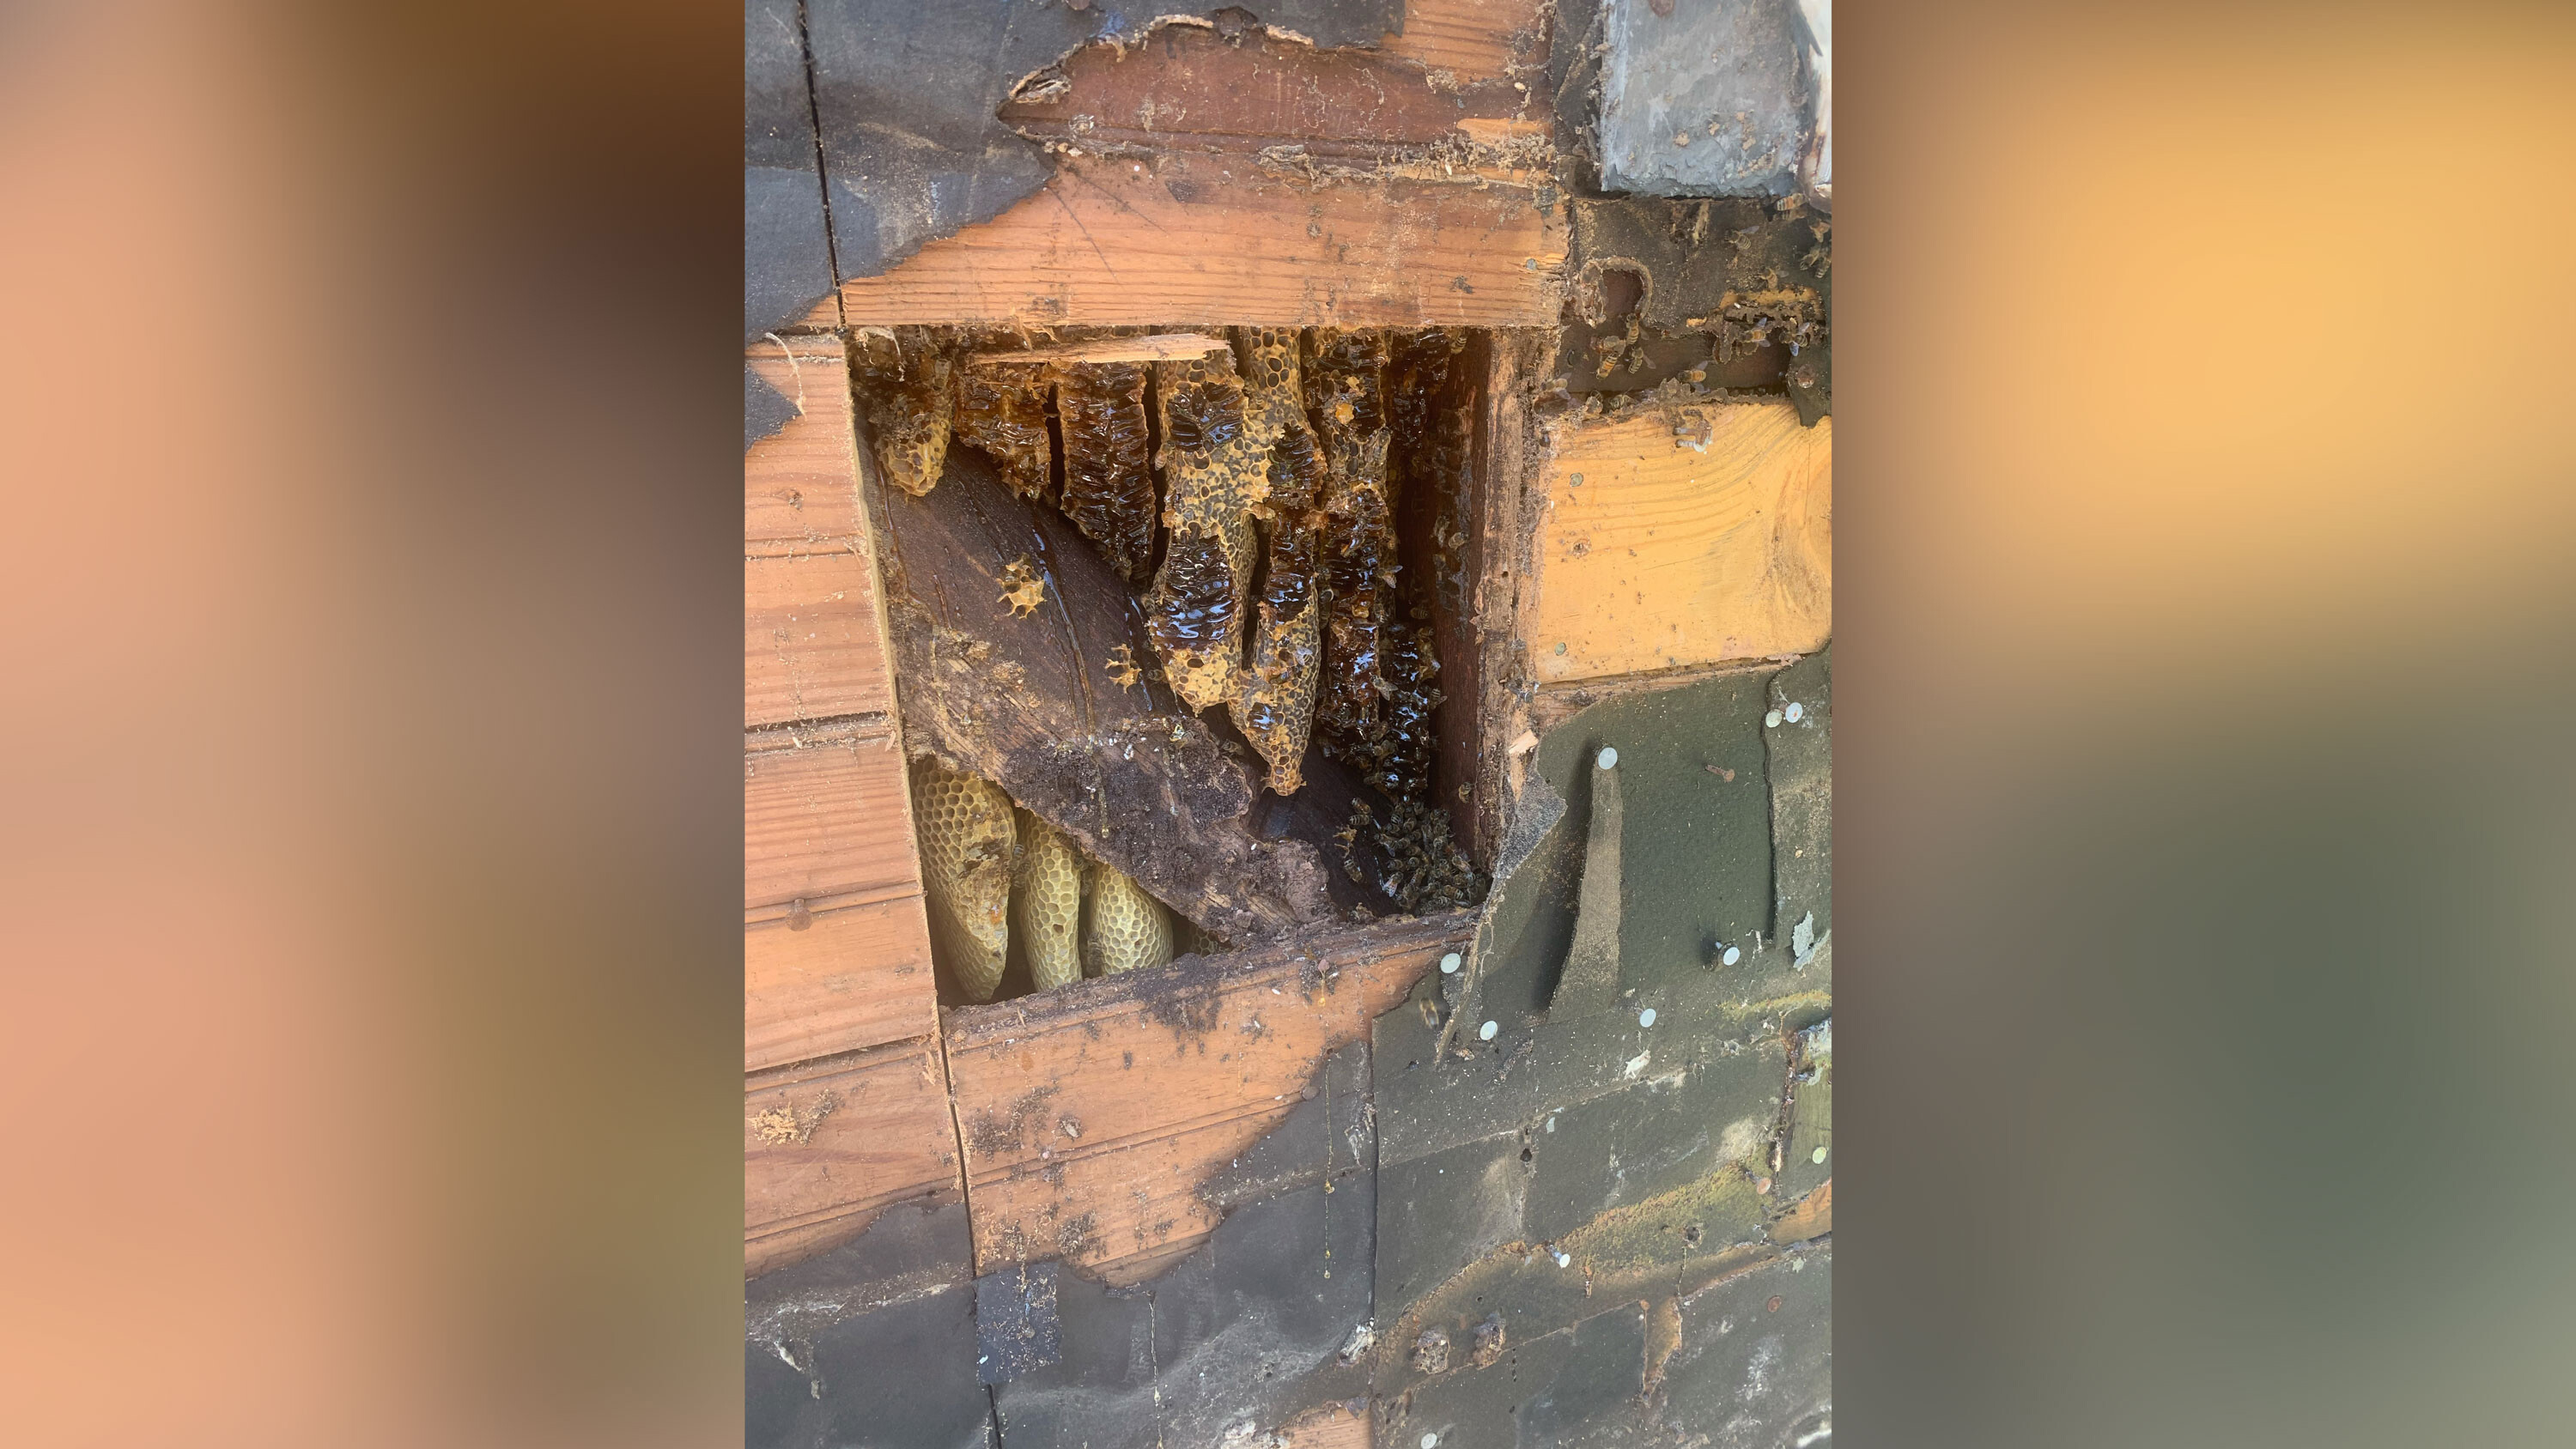 450,000 honeybees have been occupying the walls of this home for 35 years. They just got rehomed